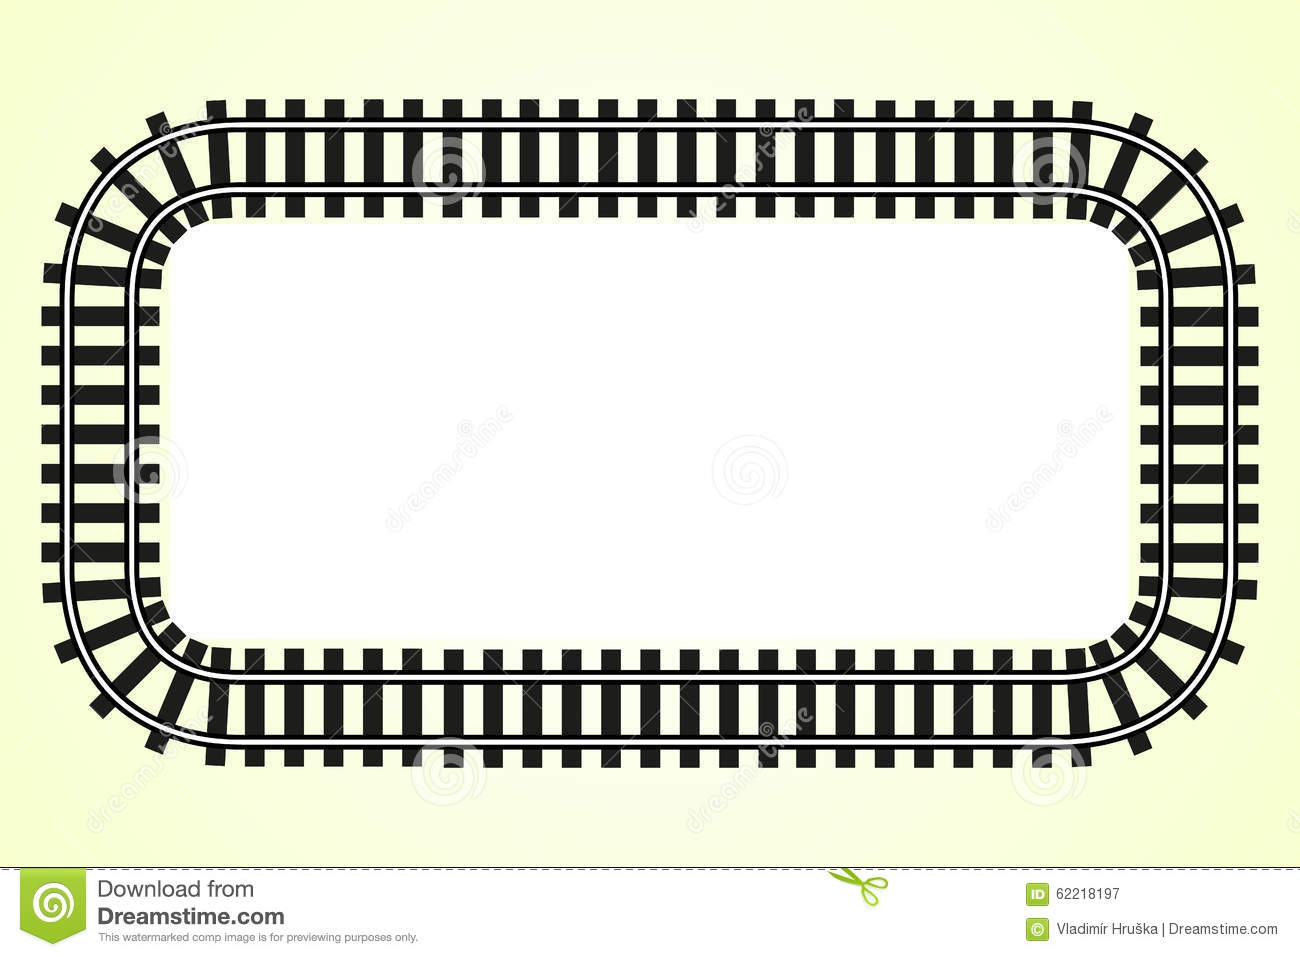 Locomotive Railroad Track Frame Transport Border Stock